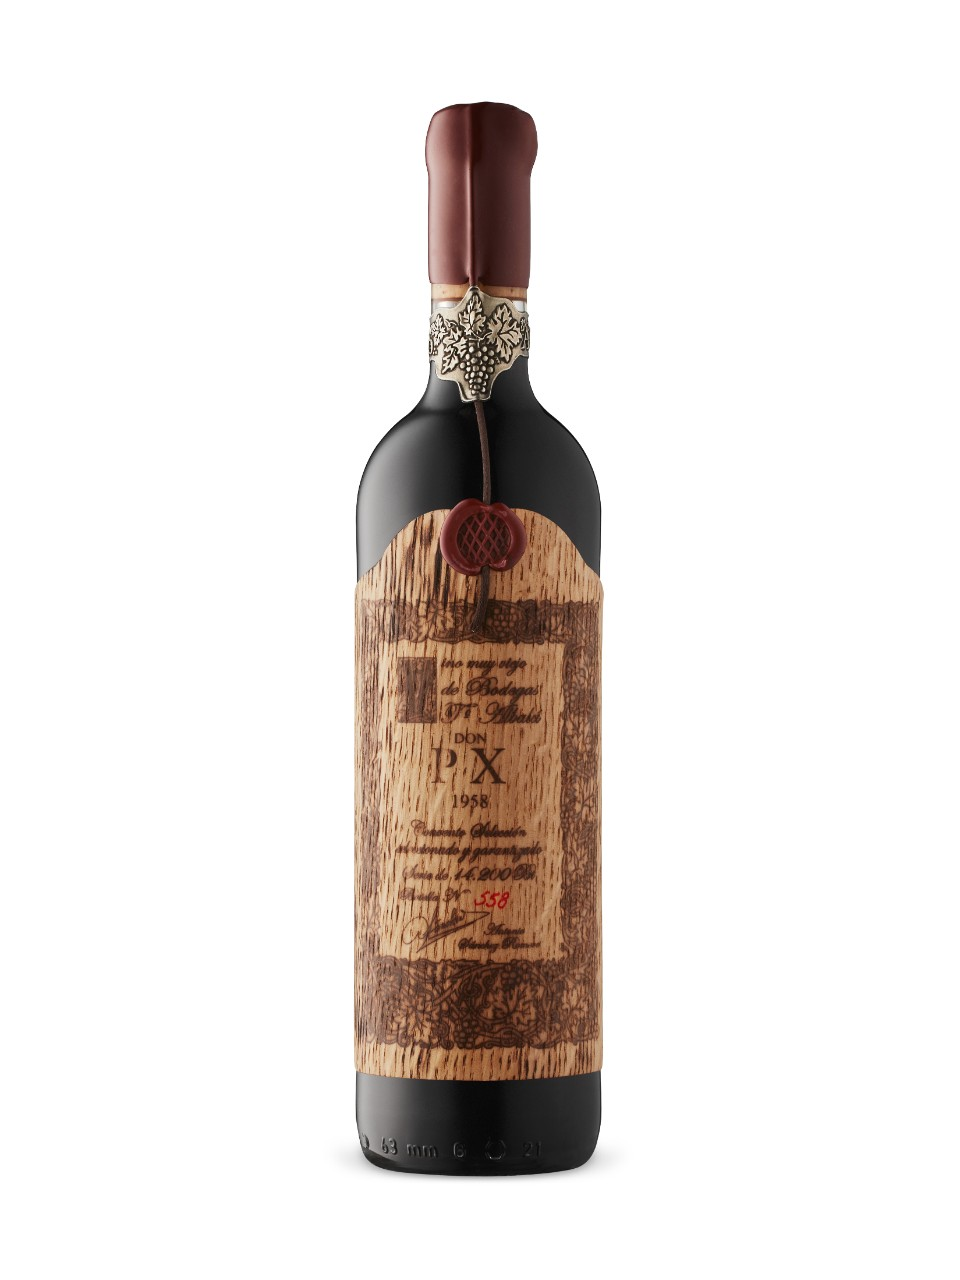 Image for Toro Albala Don PX Old Vine Montilla-Moriles 1958 from LCBO